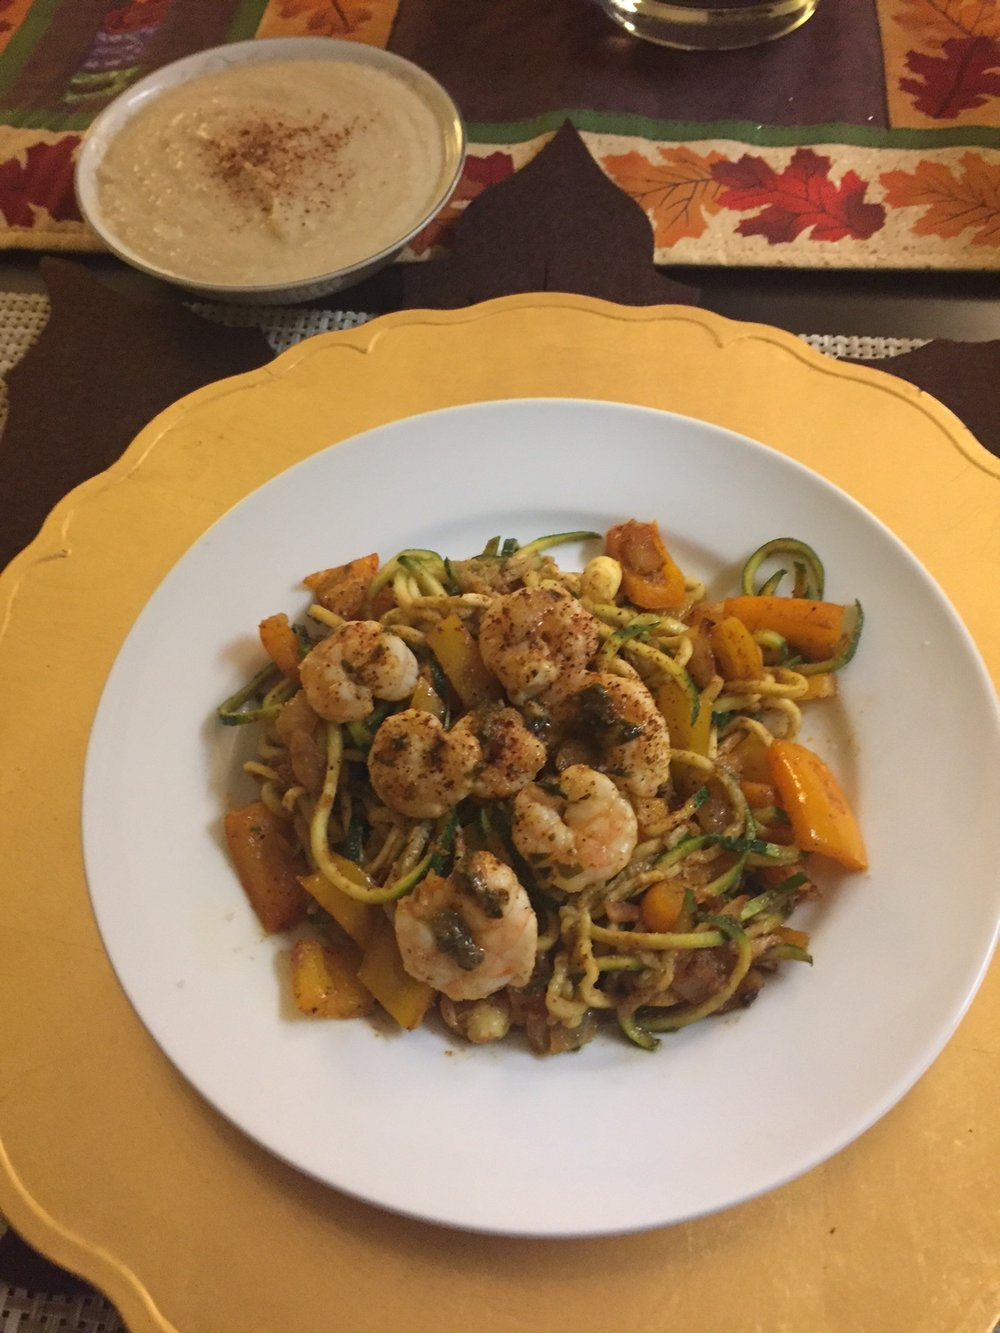 Cilantro Lime Shrimp with Zucchini Pasta & Cauliflower Soup - Paleo & Whole 30